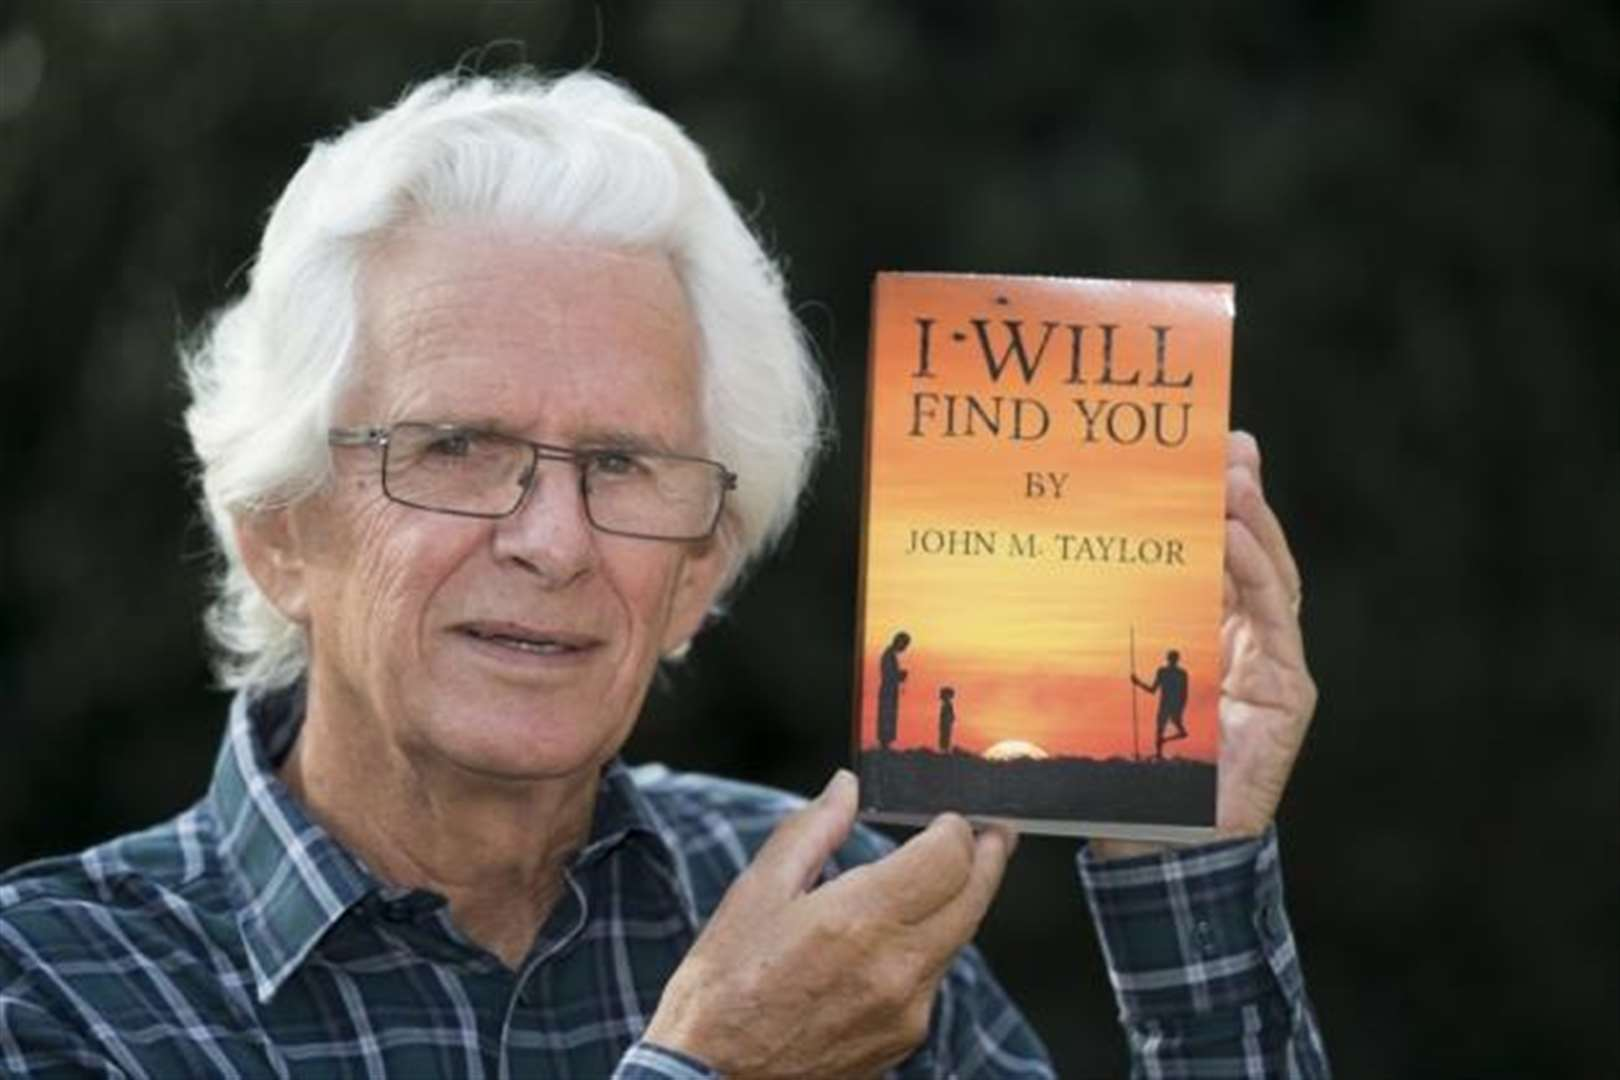 Cambridge author John Taylor to sign copies of his book at Heffers